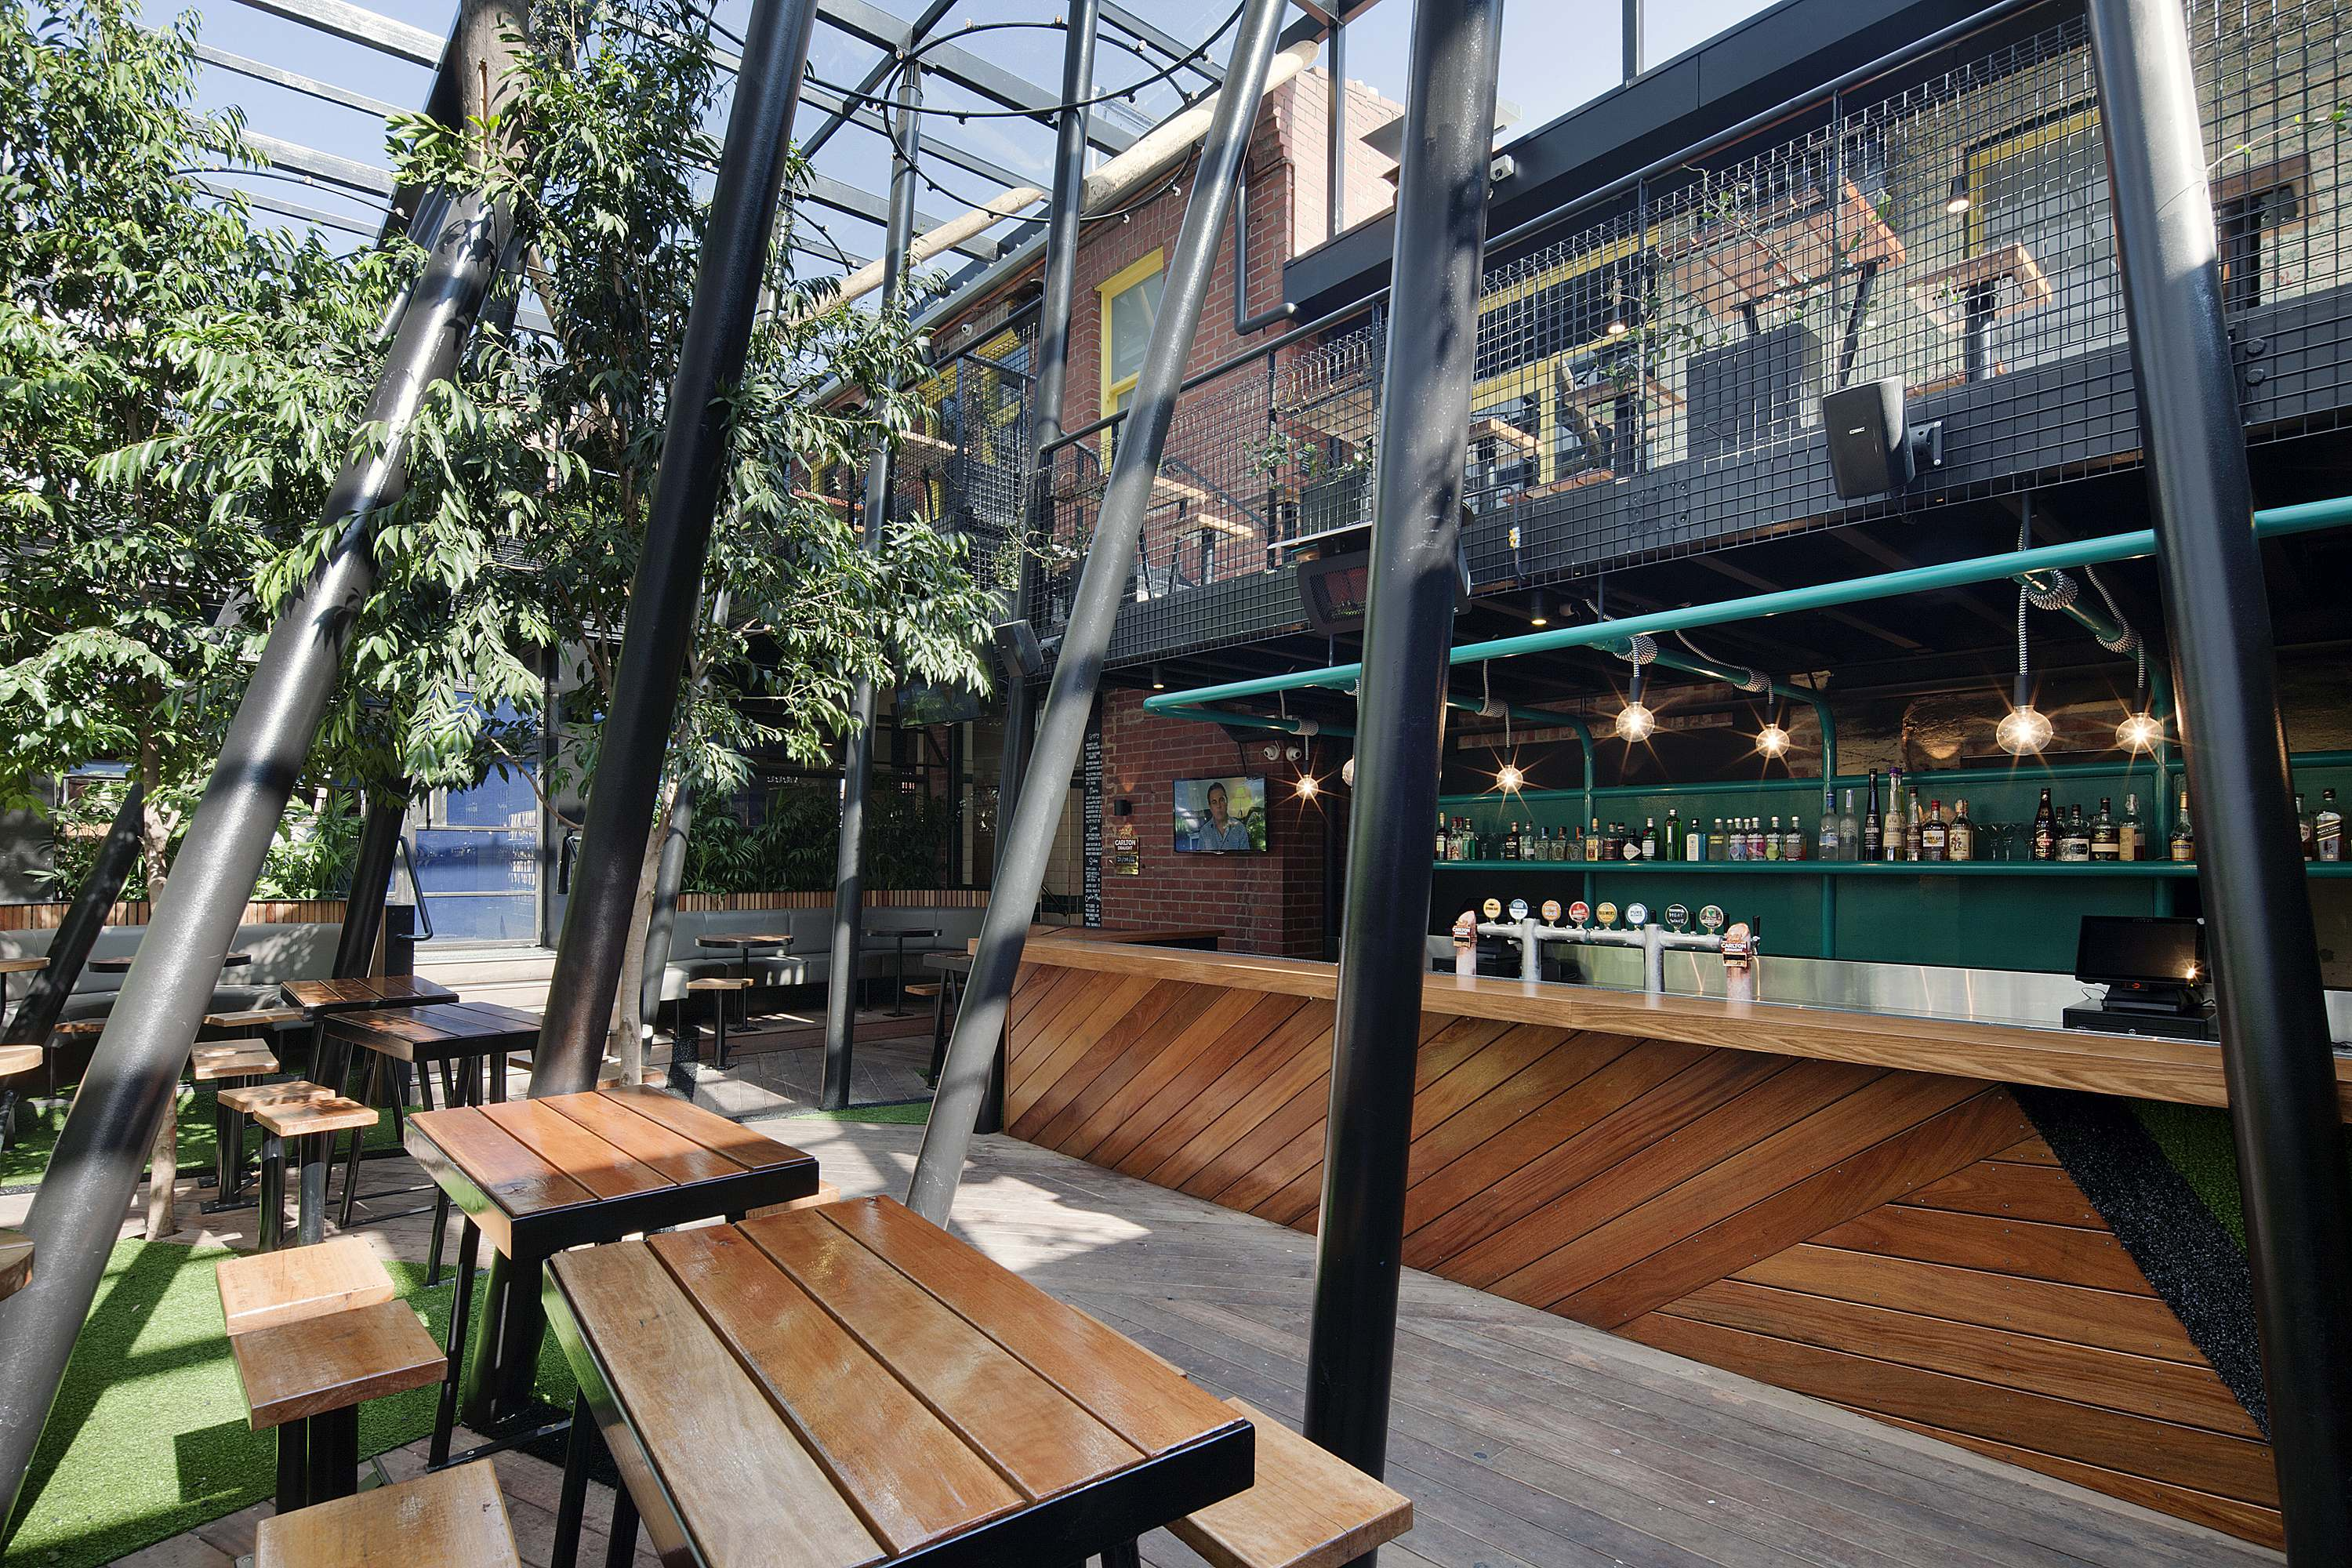 Melbourne S Best Beer Gardens